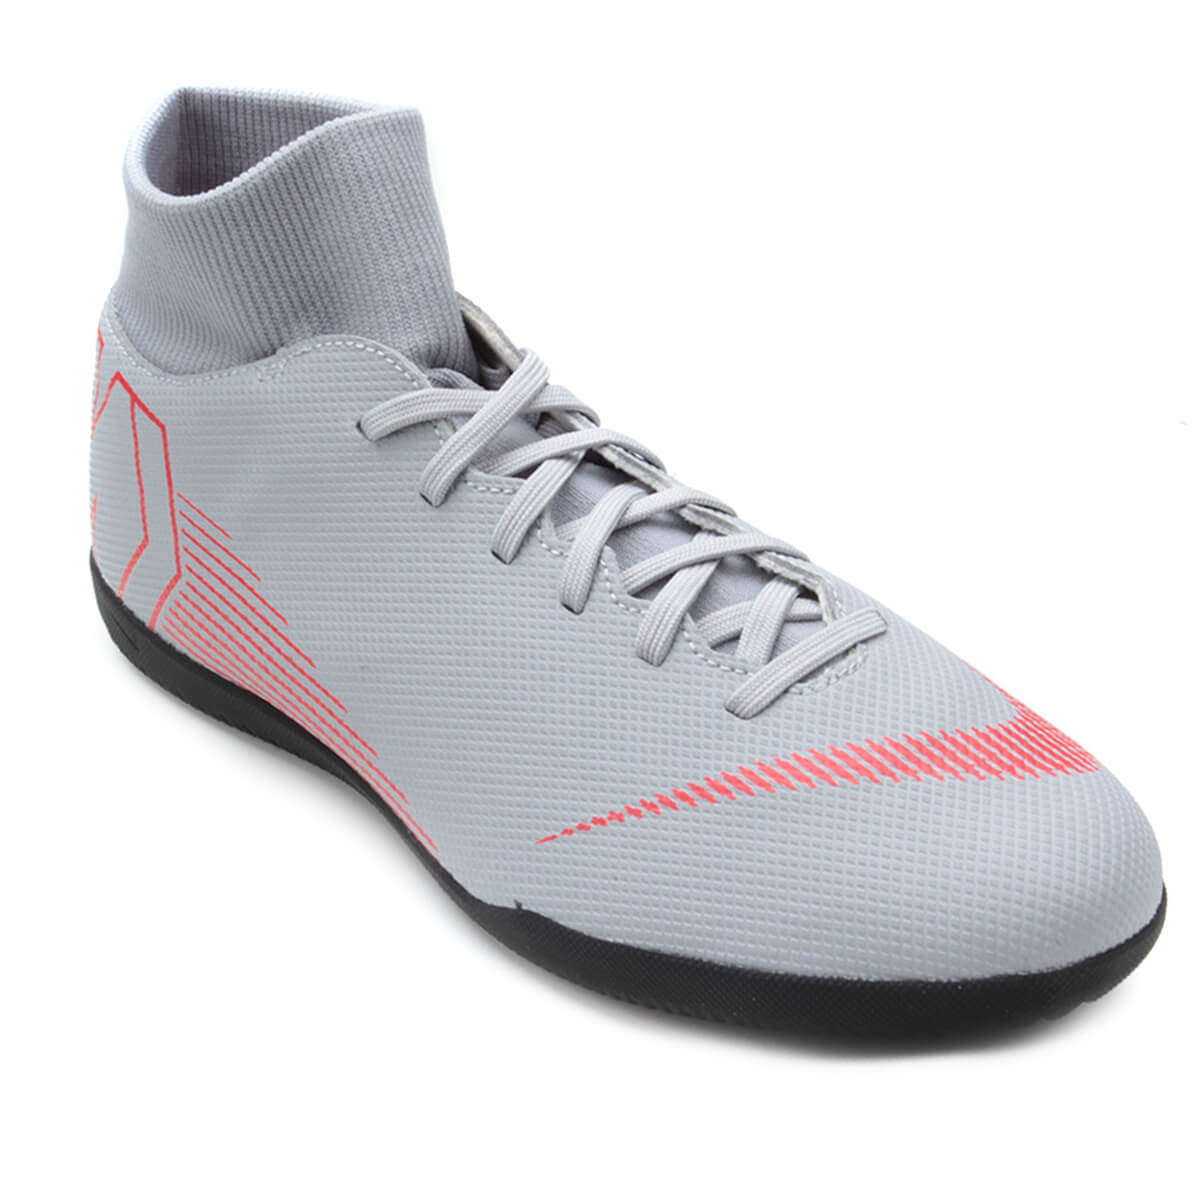 8b6d7074f63ec Chuteira Futsal Nike Mercurial Superflyx 6 Club Ic - BRACIA SHOP ...